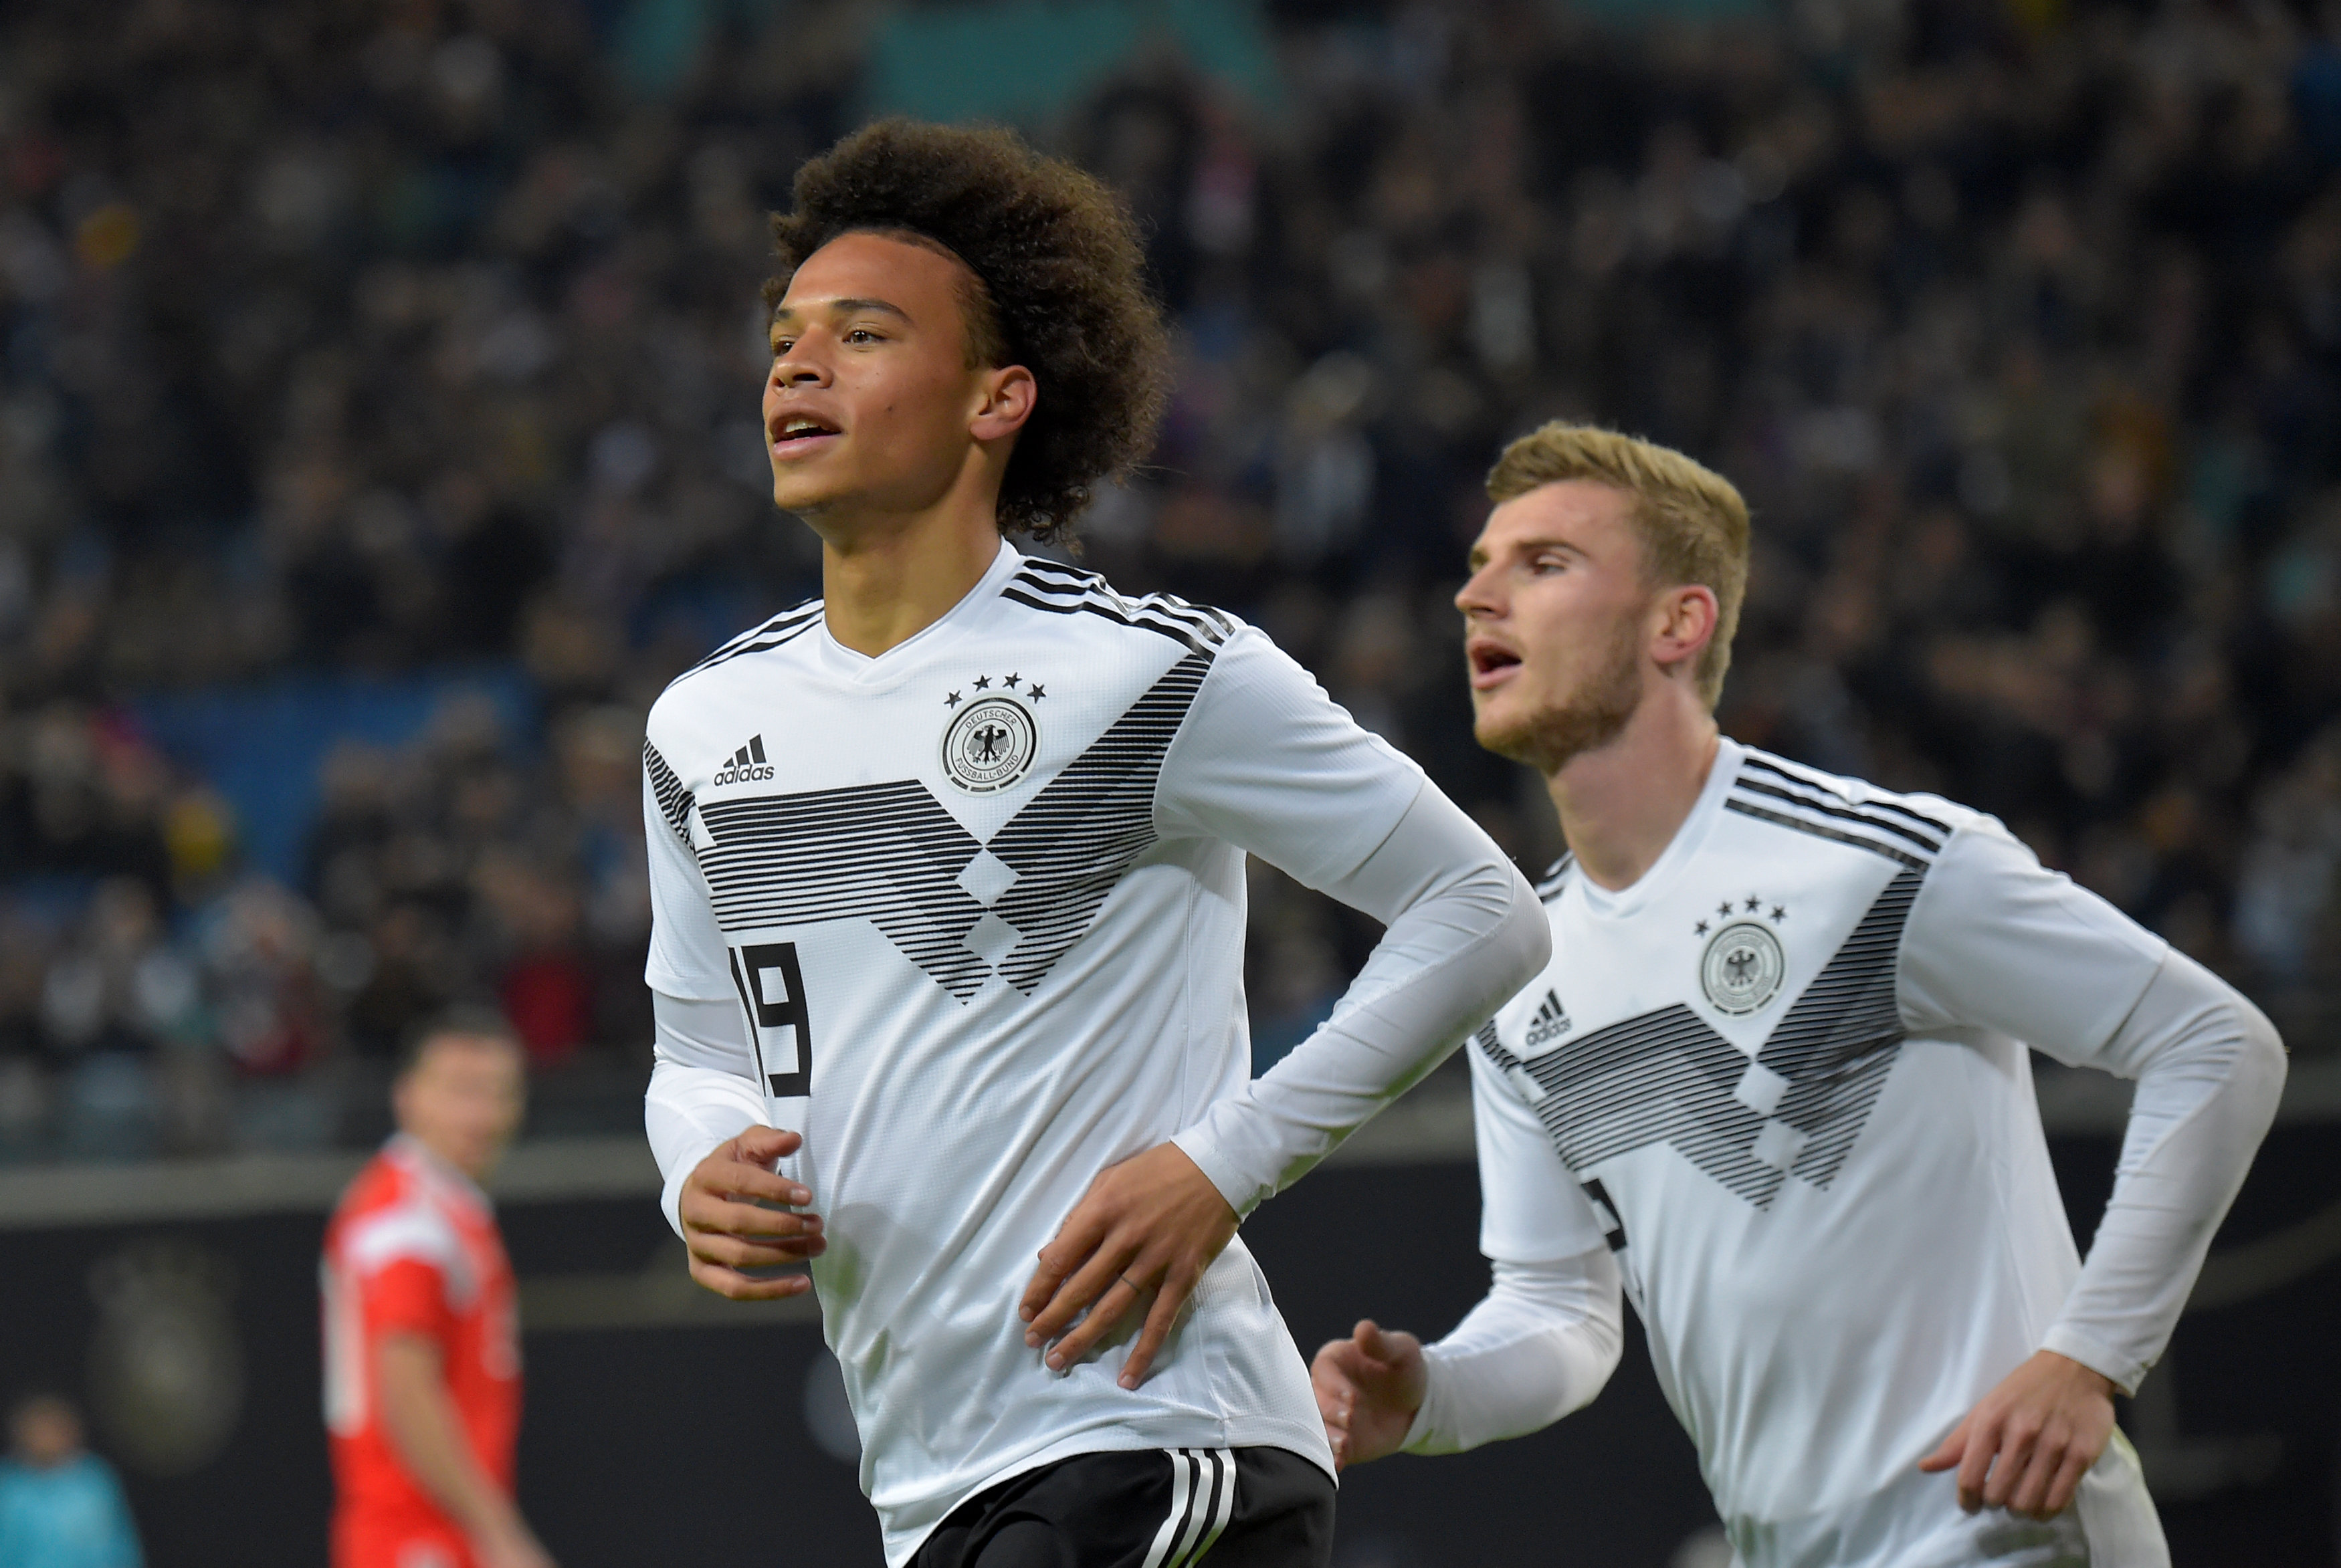 Soccer Football - International Friendly - Germany v Russia - Red Bull Arena, Leipzig, Germany - November 15, 2018  Germany's Leroy Sane celebrates scoring their first goal.   REUTERS